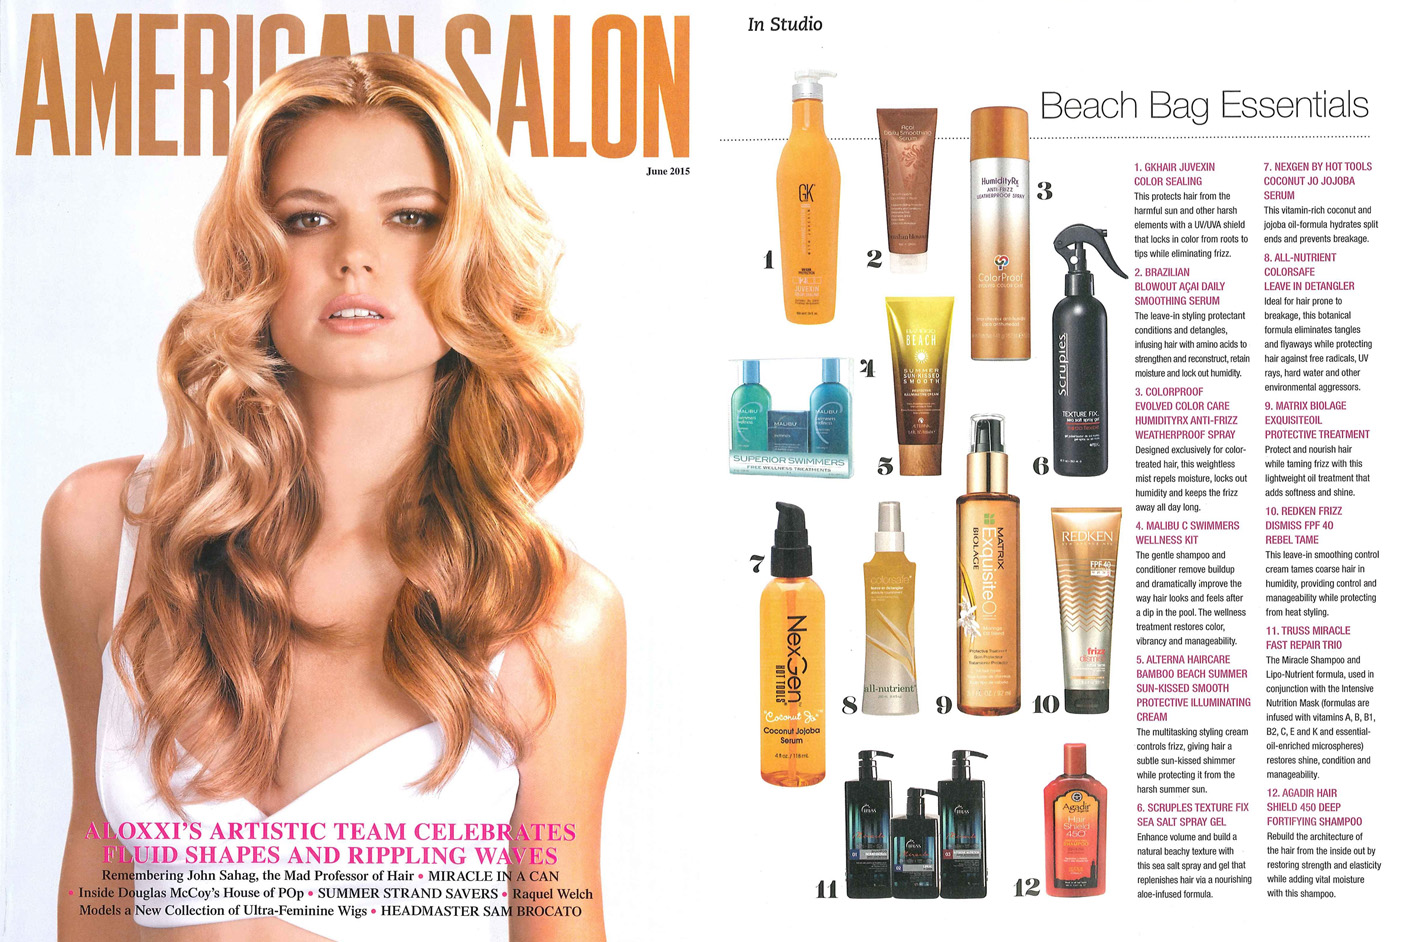 Matrix Haircare As Seen In American Salon May 2015 Biolage Exquisite Oil Full Spread